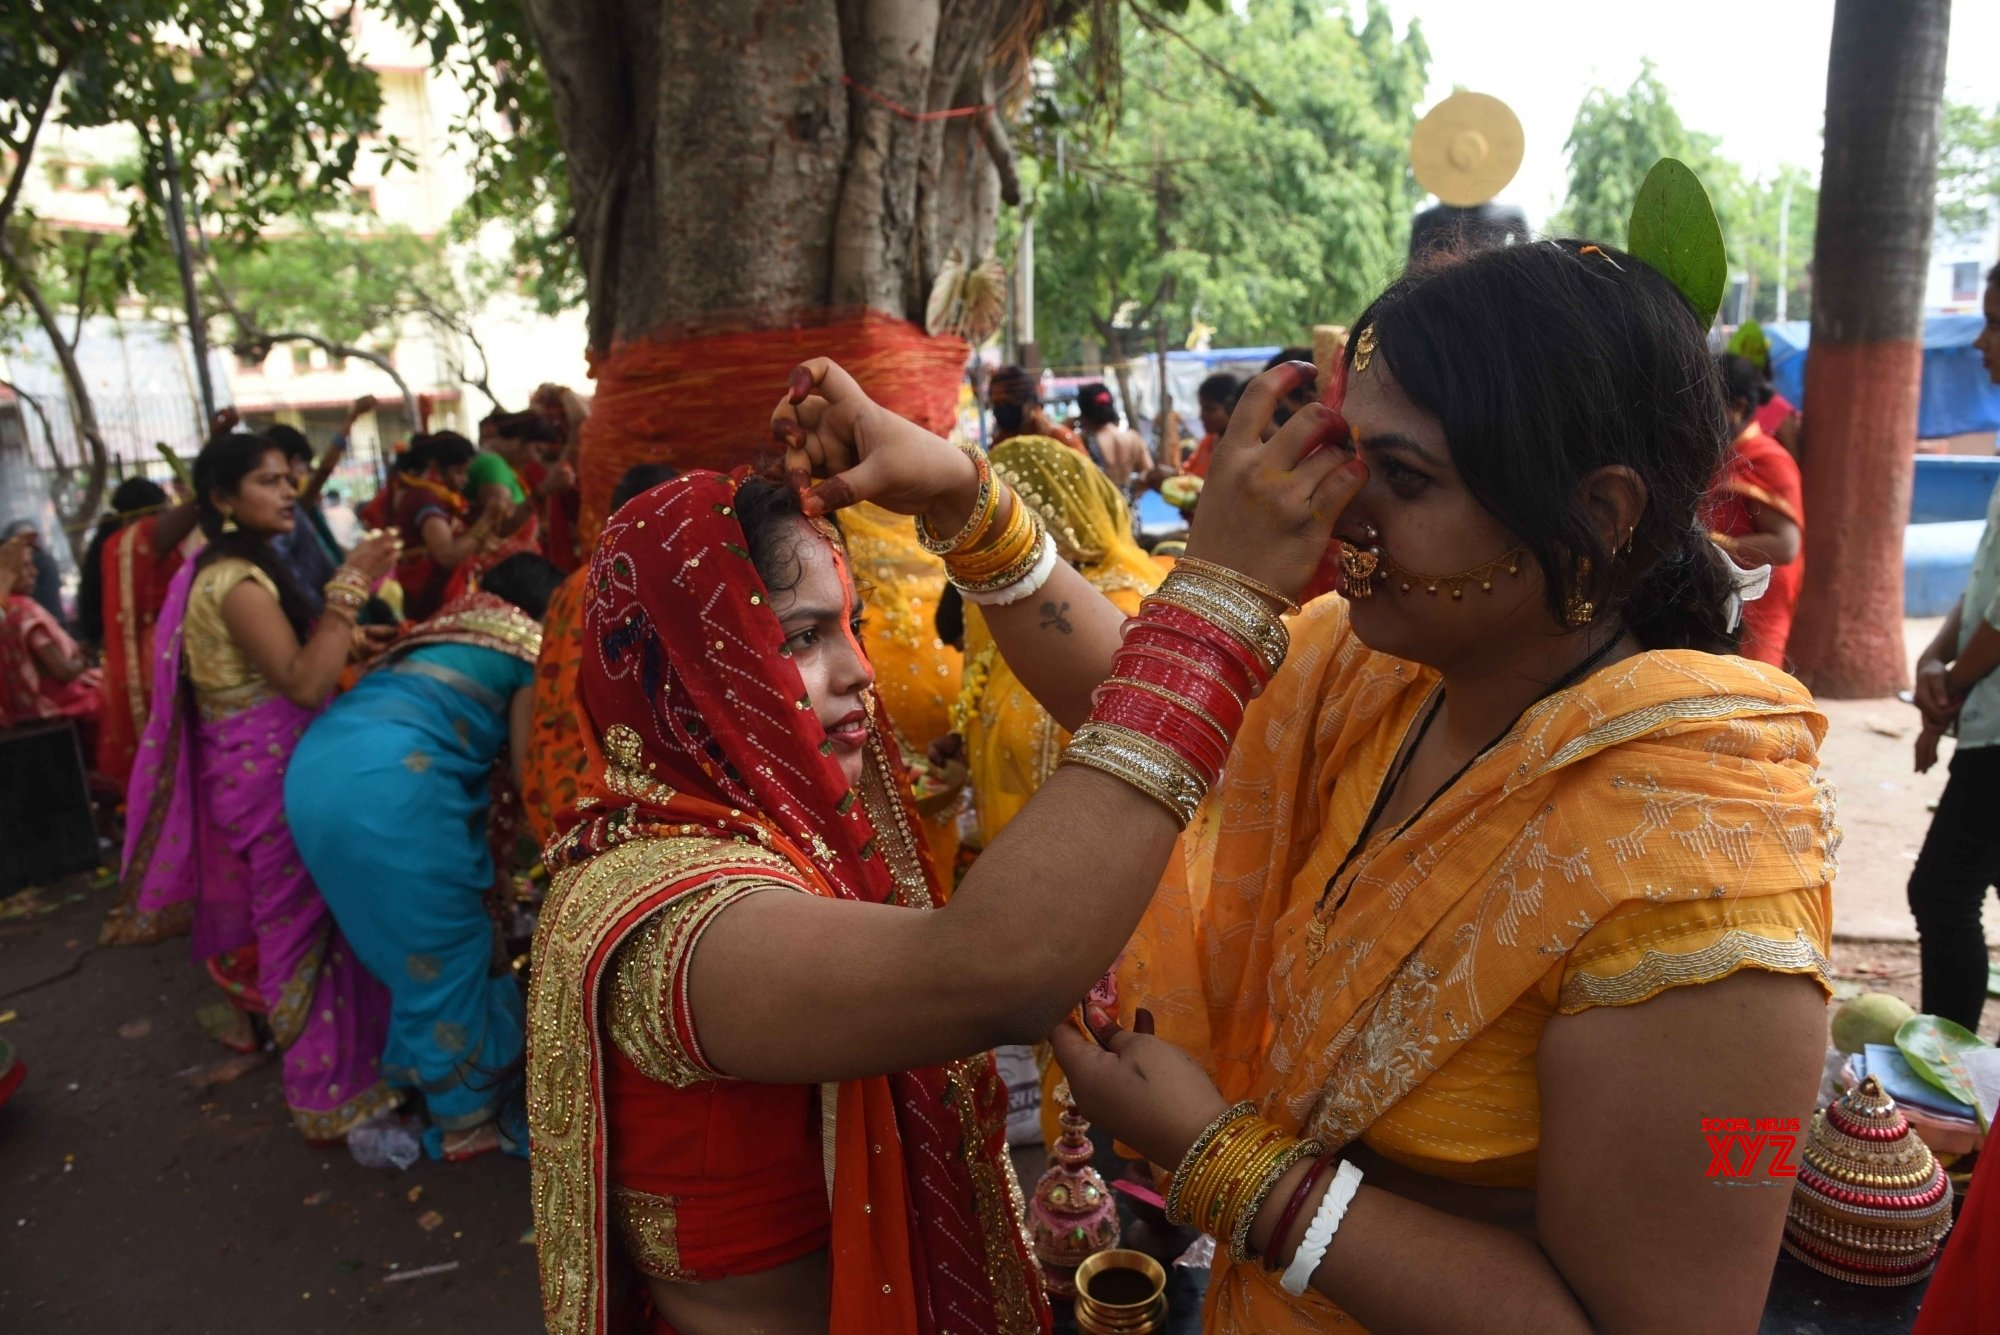 Patna: - Married women tie cotton threads around a banyan tree on the occasion of Vat Savitri Puja - in Patna. #Gallery